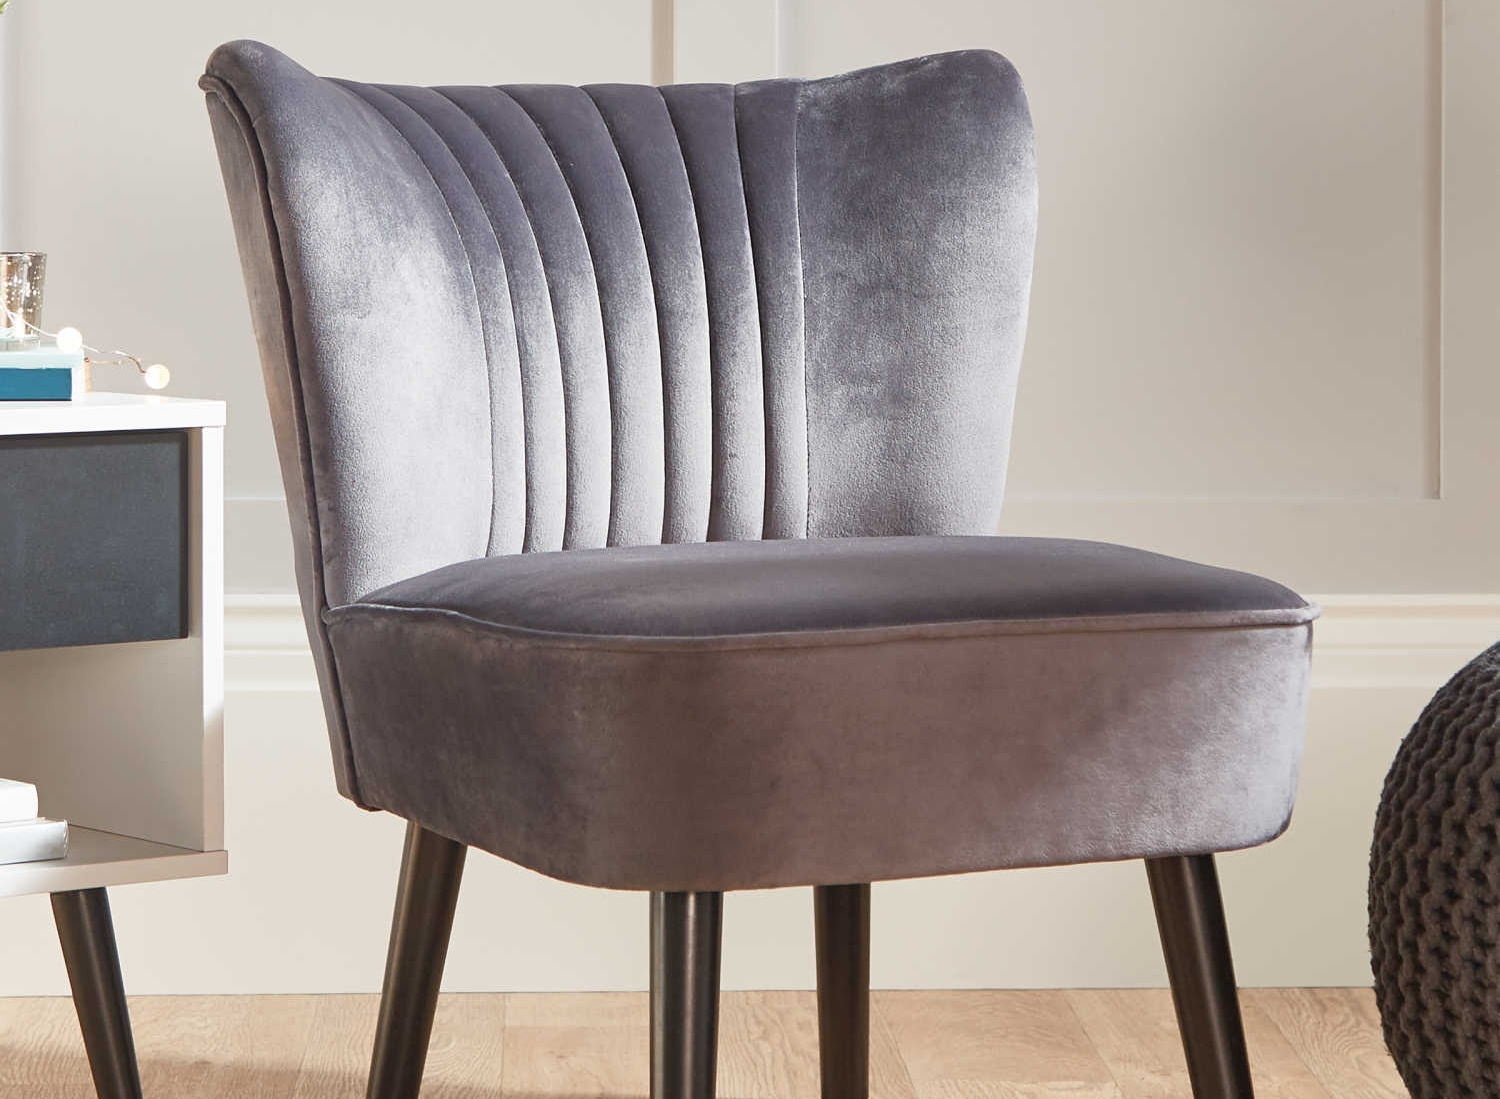 Aldi is selling a designer-style velvet chair and it's surprisingly affordable